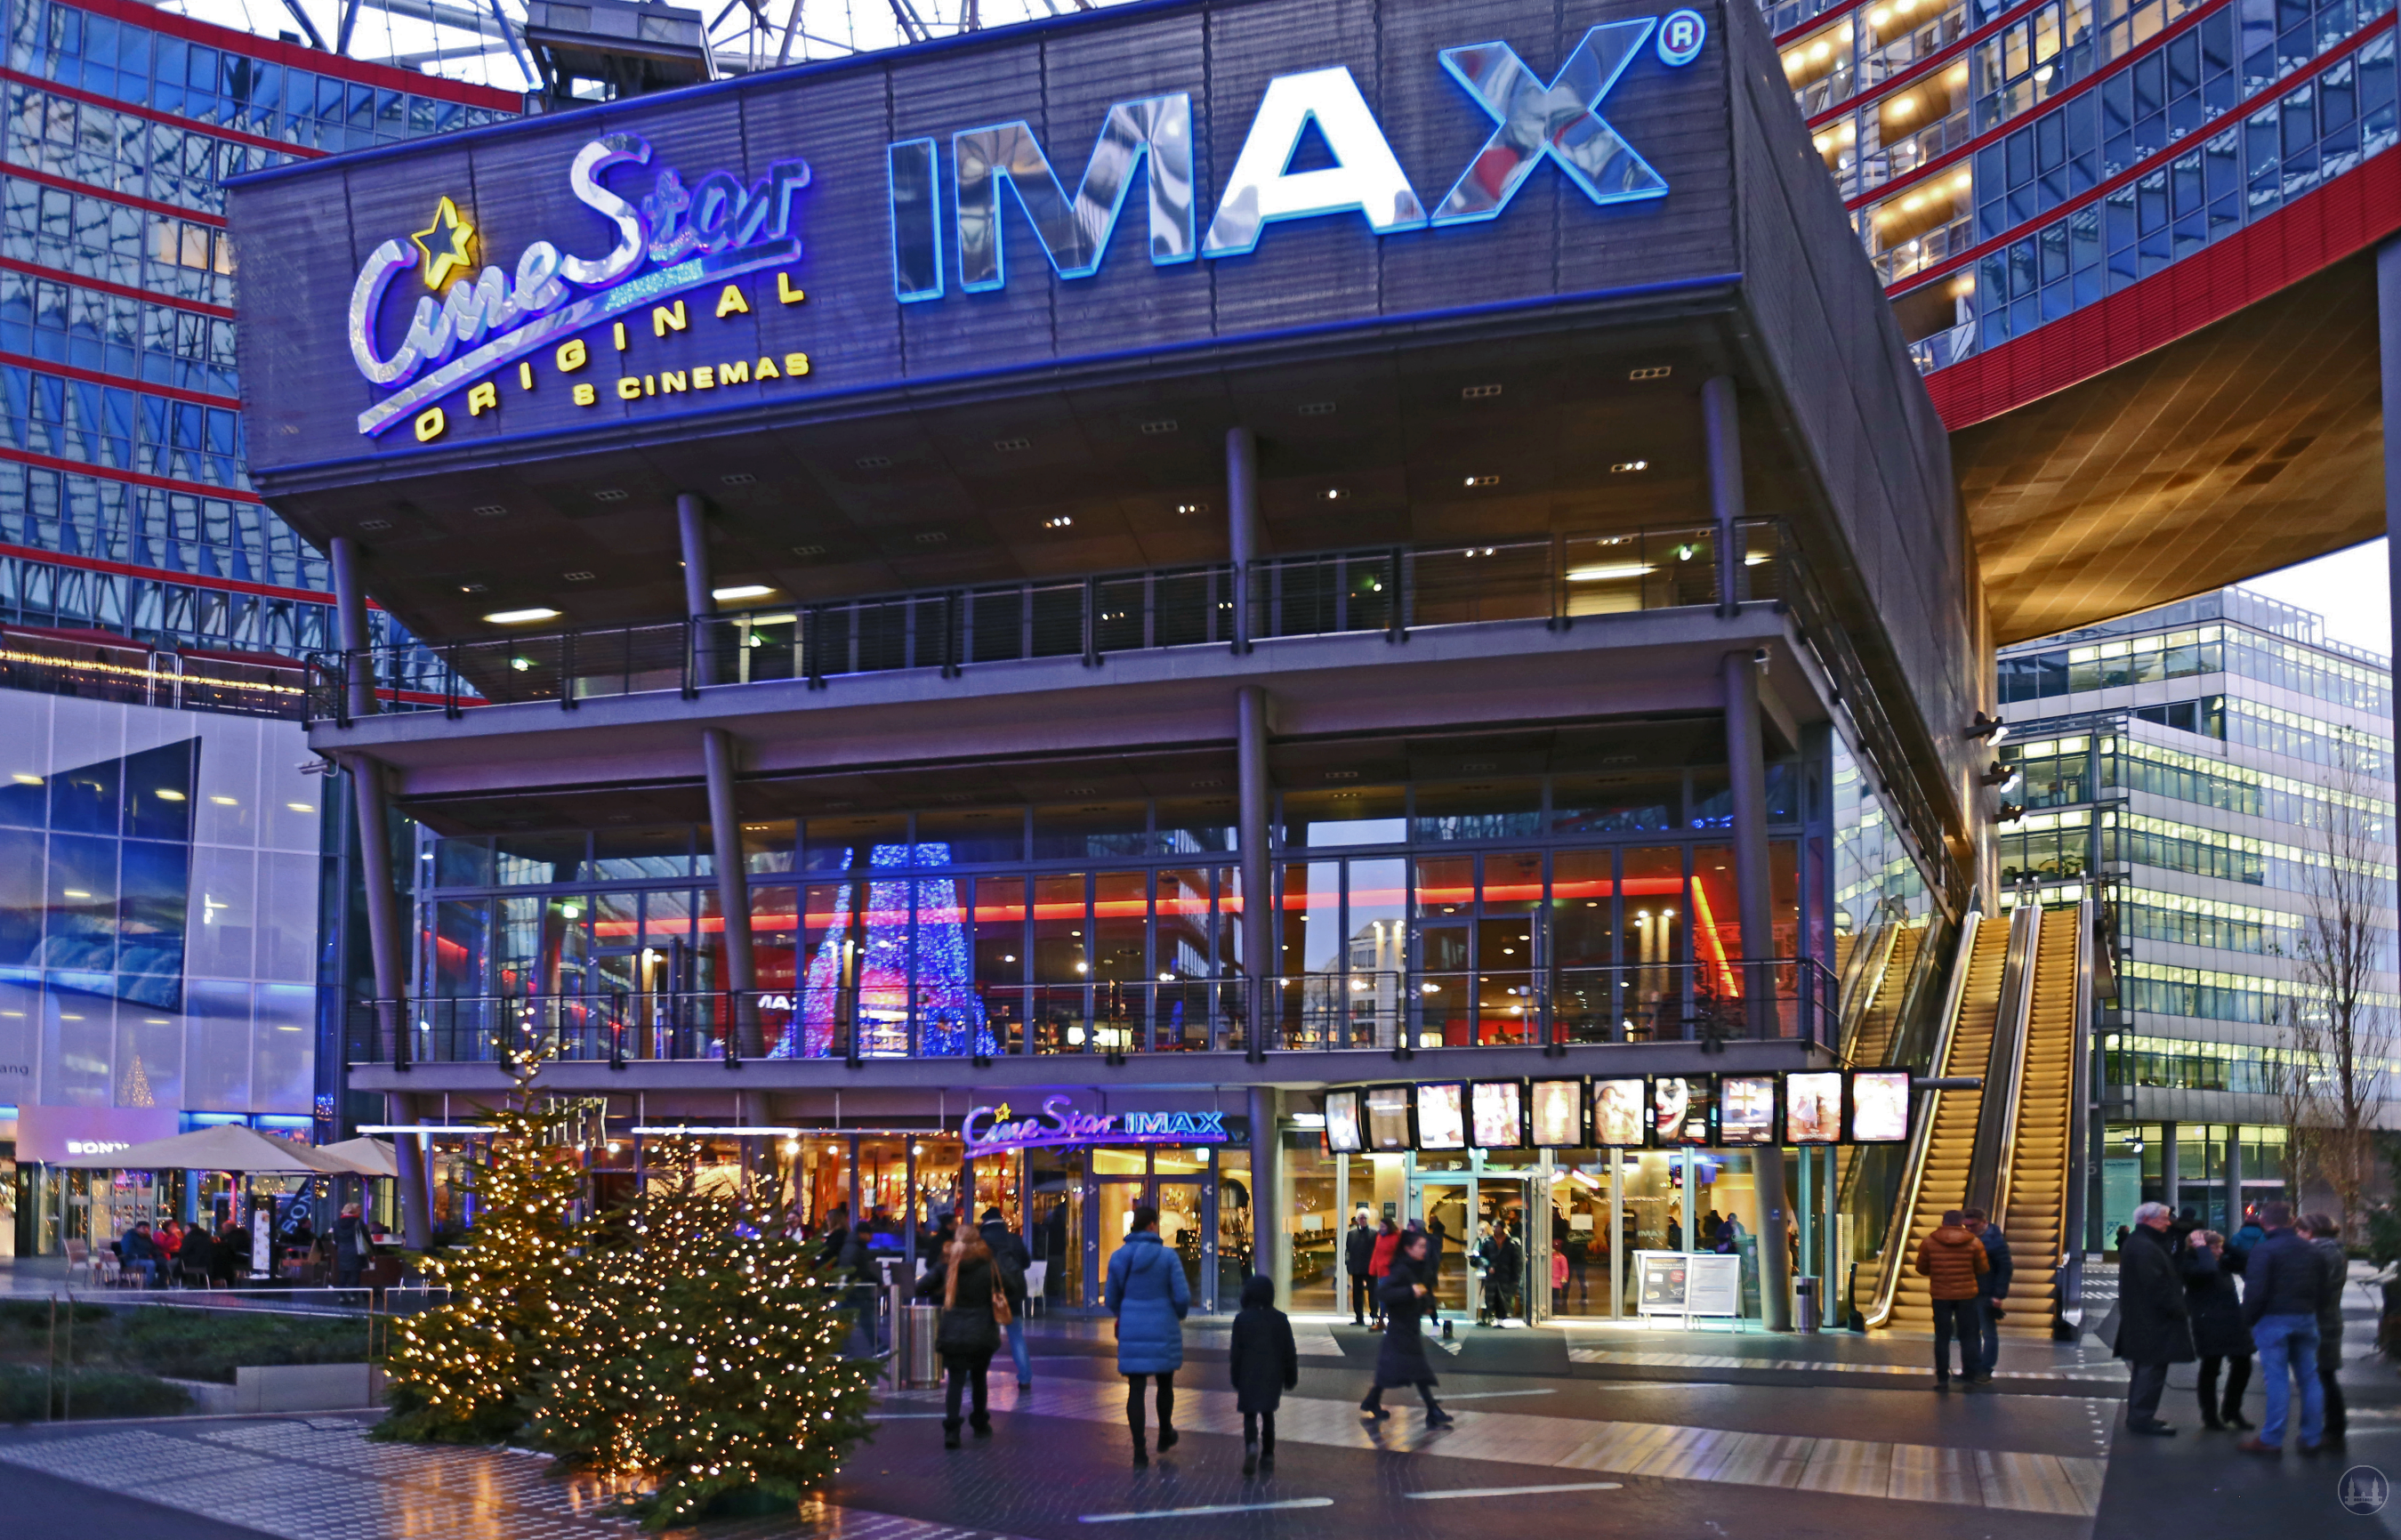 CineStar Kino im Sony Center Berlin. Der sog. Entertainment - Komplex.